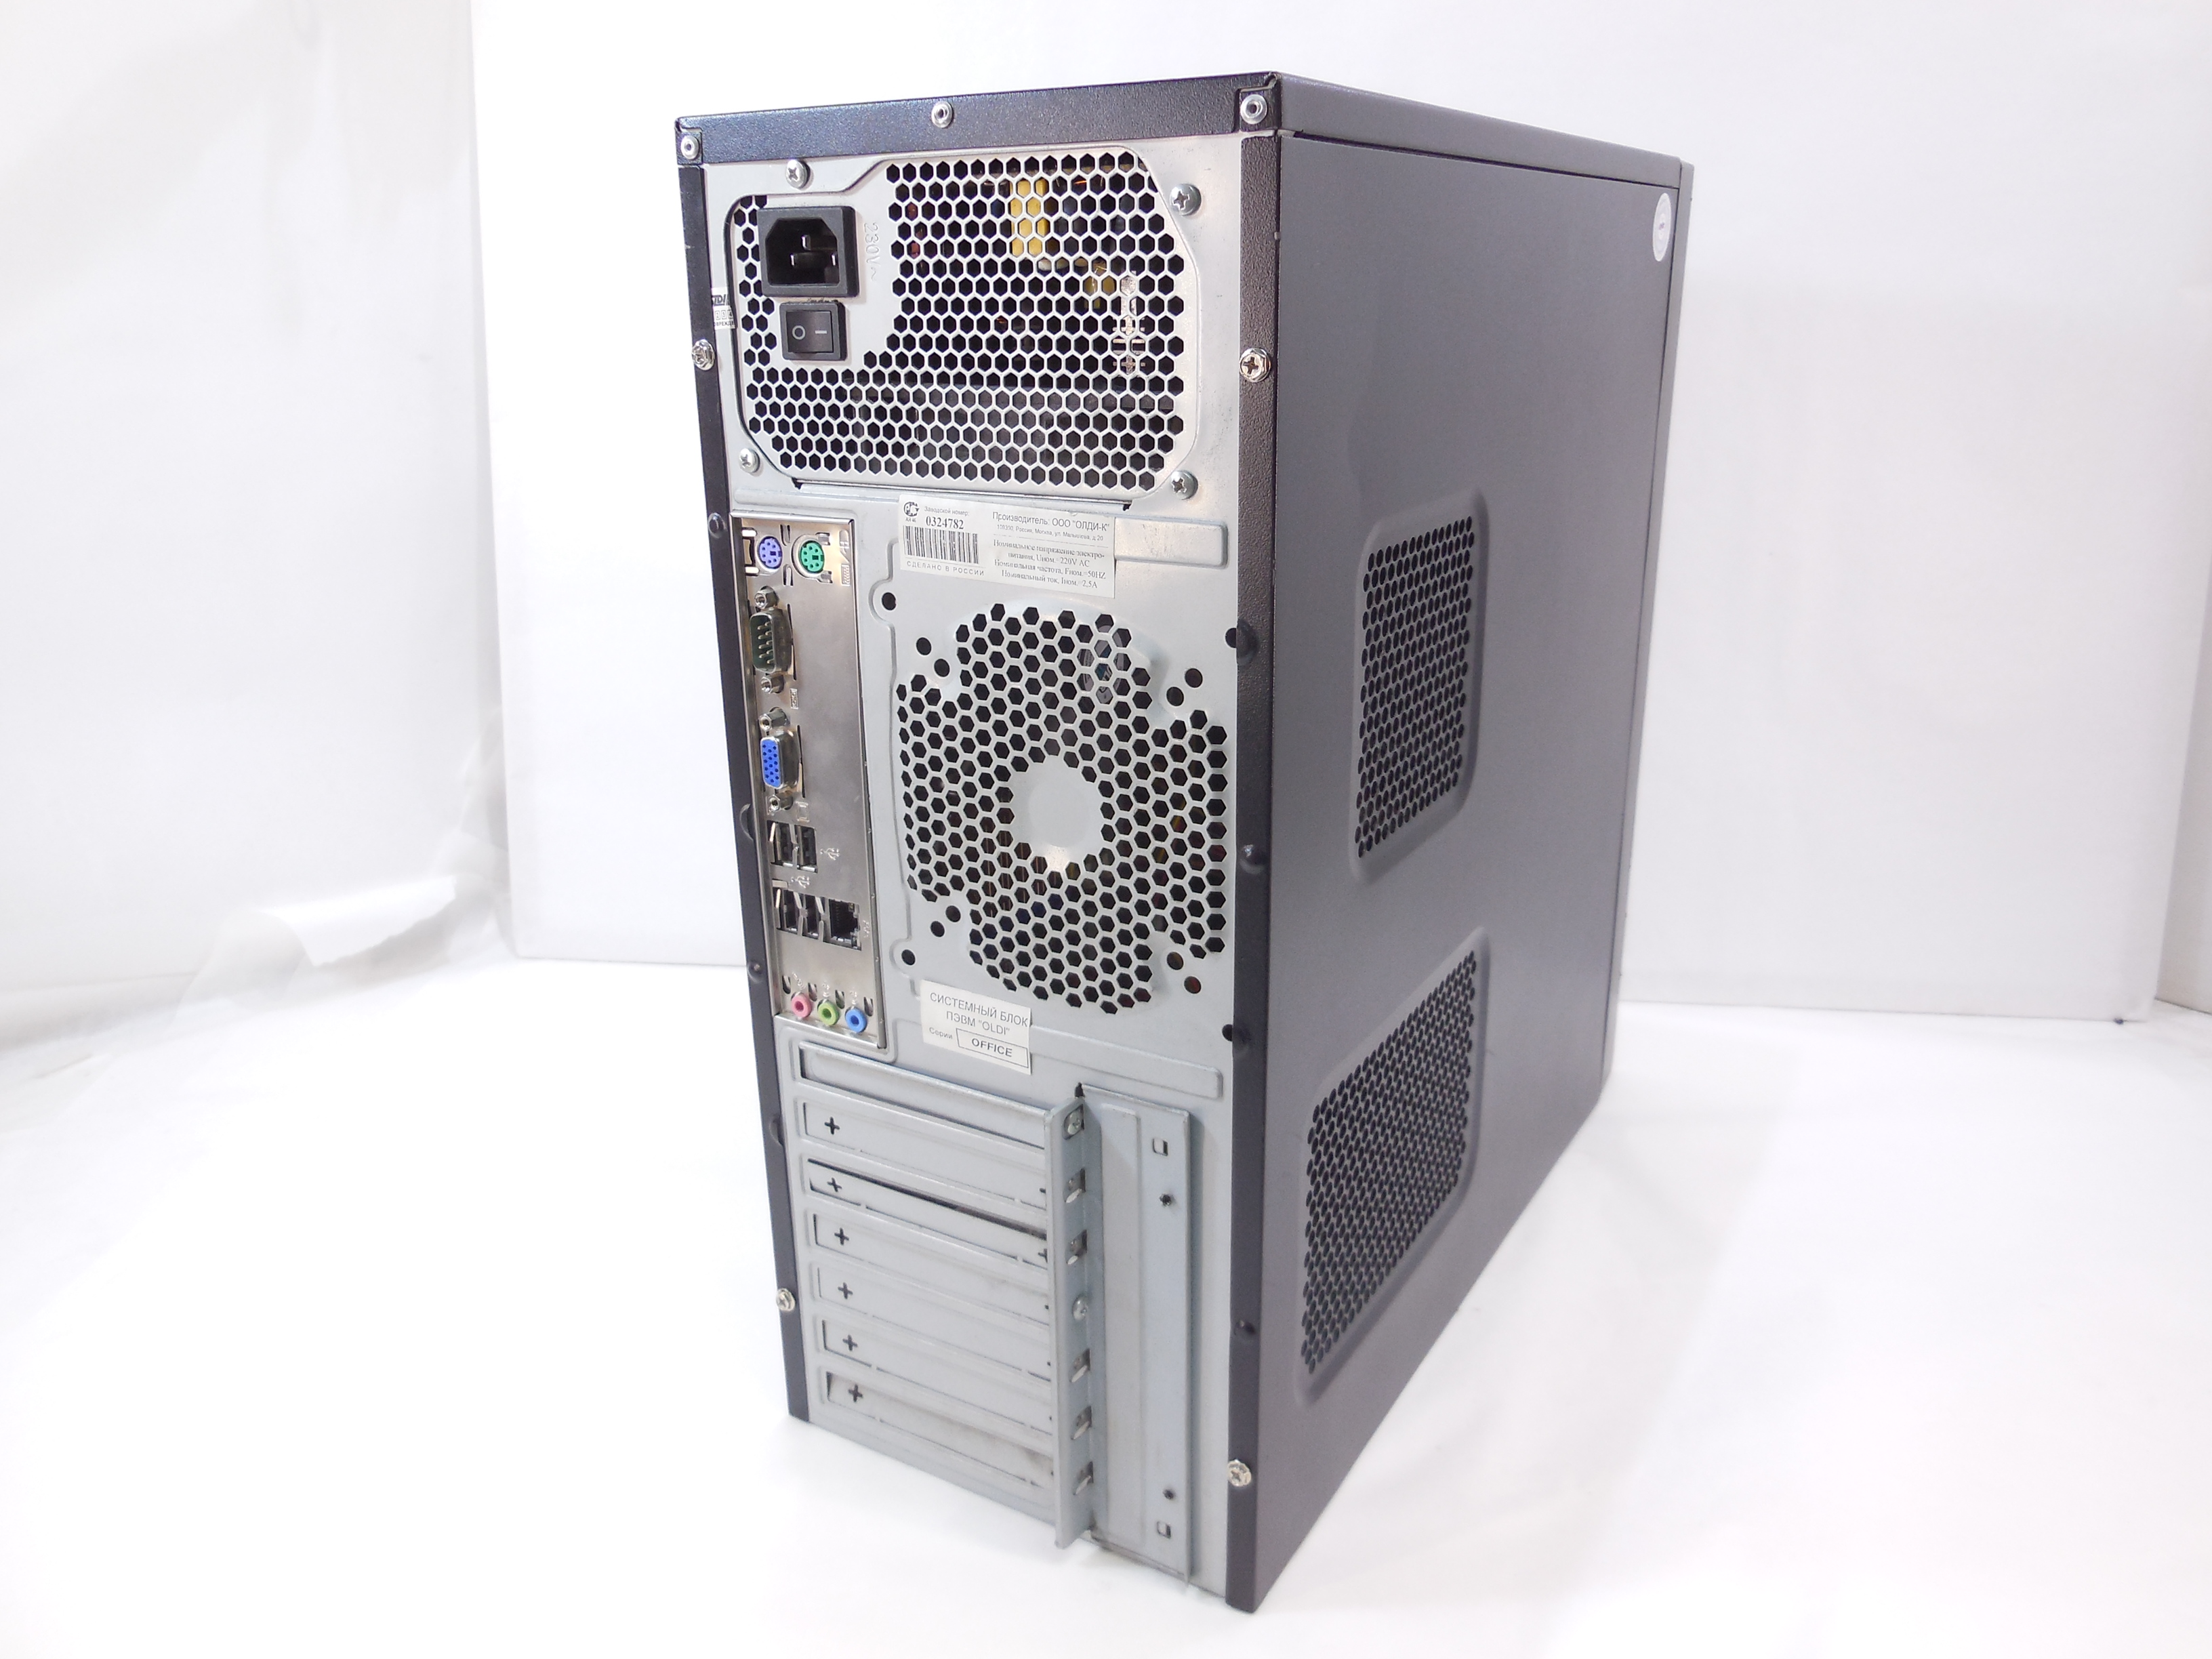 Комп. Intel Core 2 Duo E7200 2.53Ghz - Pic n 283430